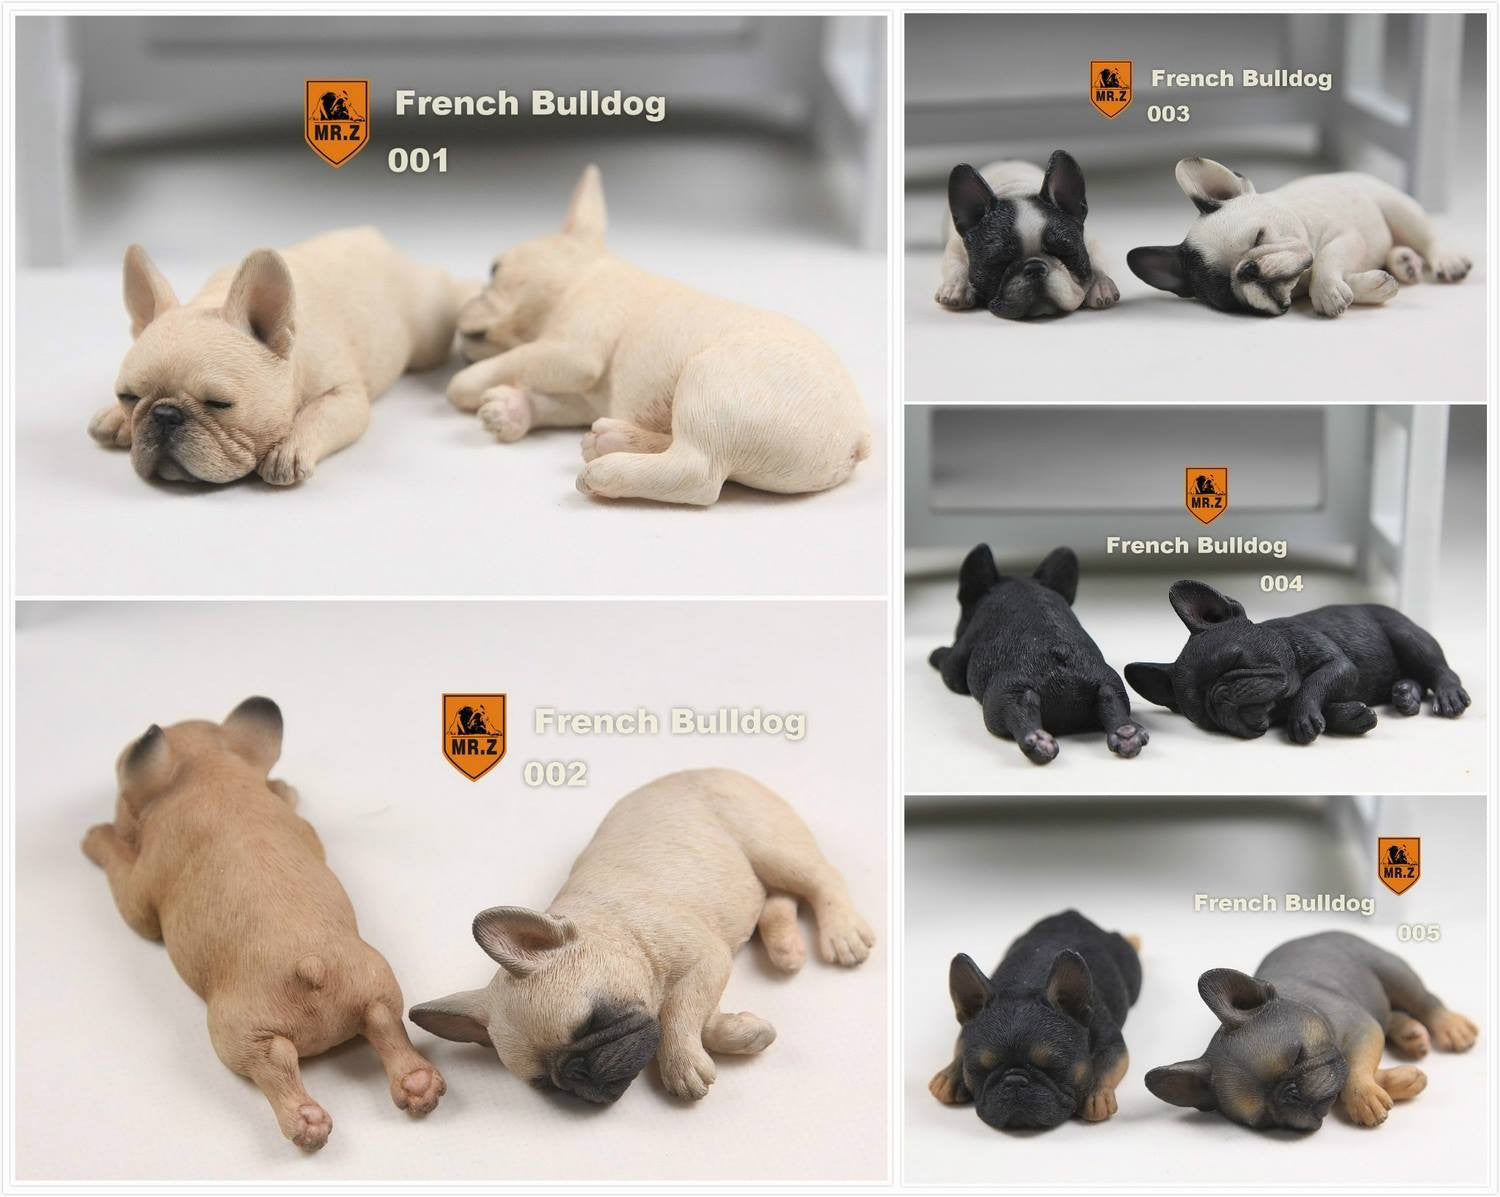 MR.Z - Real Animal Series No.9 - 1/6th Scale French Bulldog (Sleep Mode) 001-005 - Marvelous Toys - 1